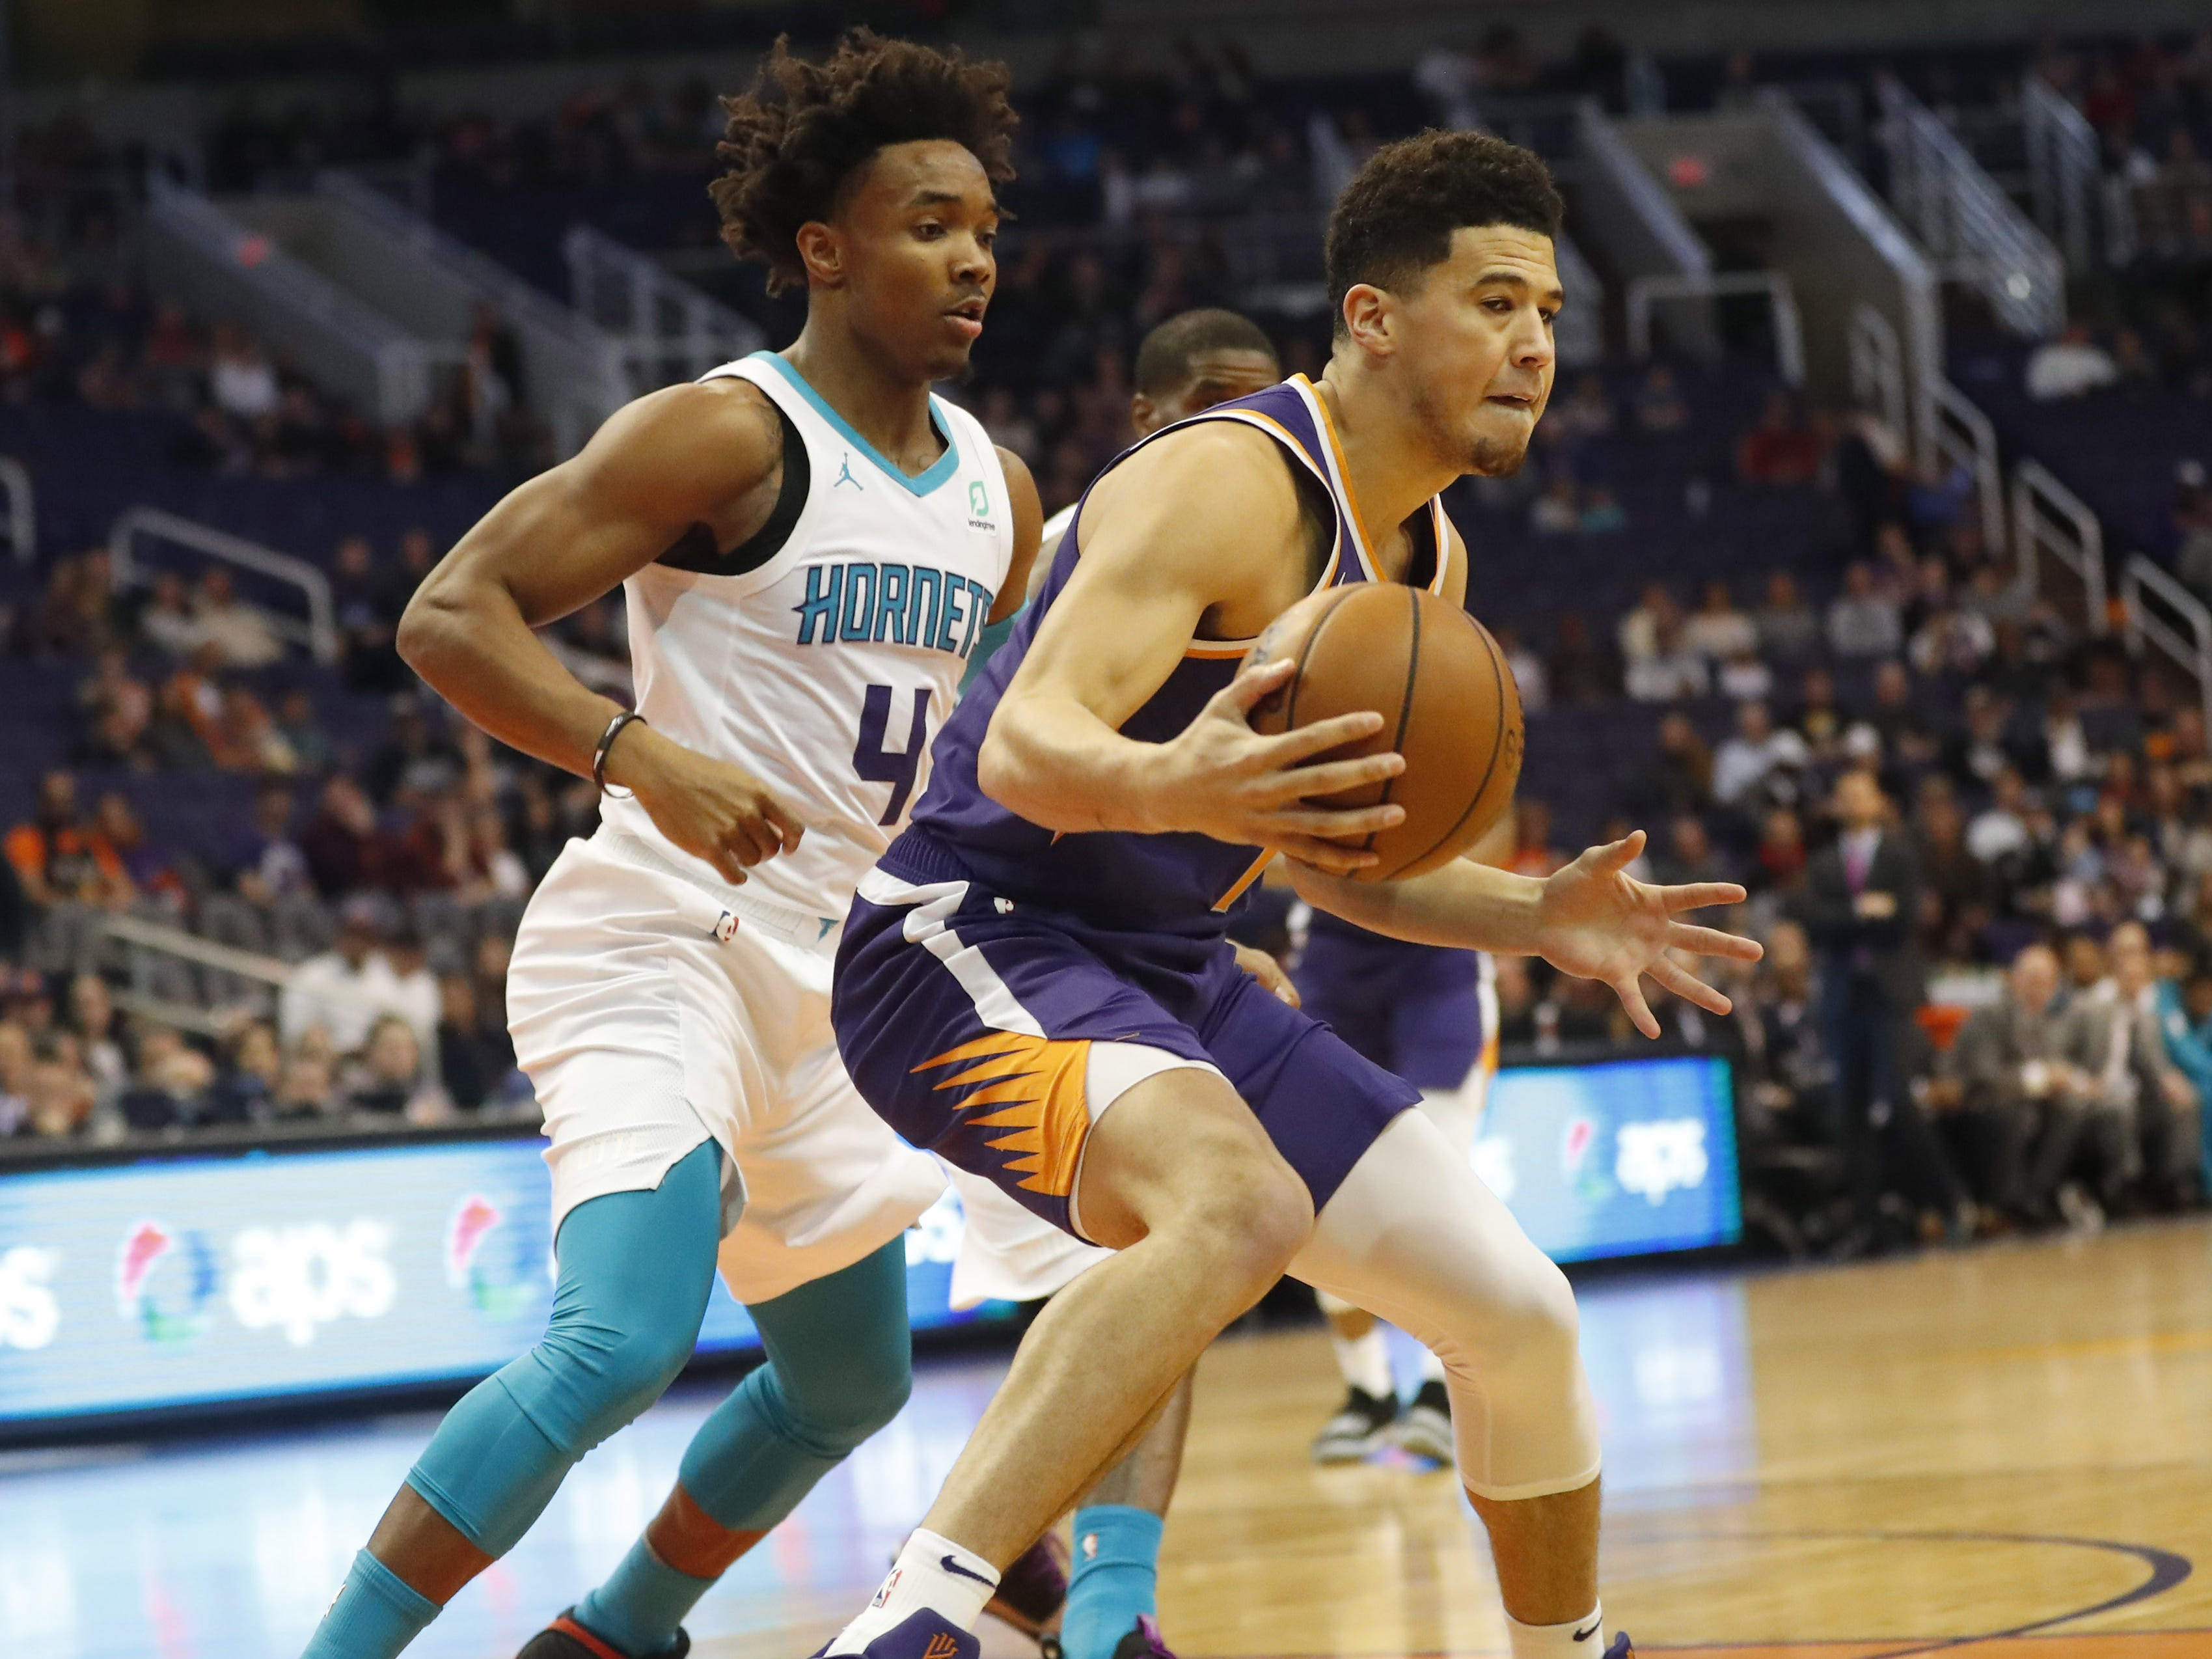 Phoenix Suns guard Devin Booker (1) puts a move on Charlotte Hornets guard Devonte' Graham (4) during the first quarter in Phoenix January 6, 2019.